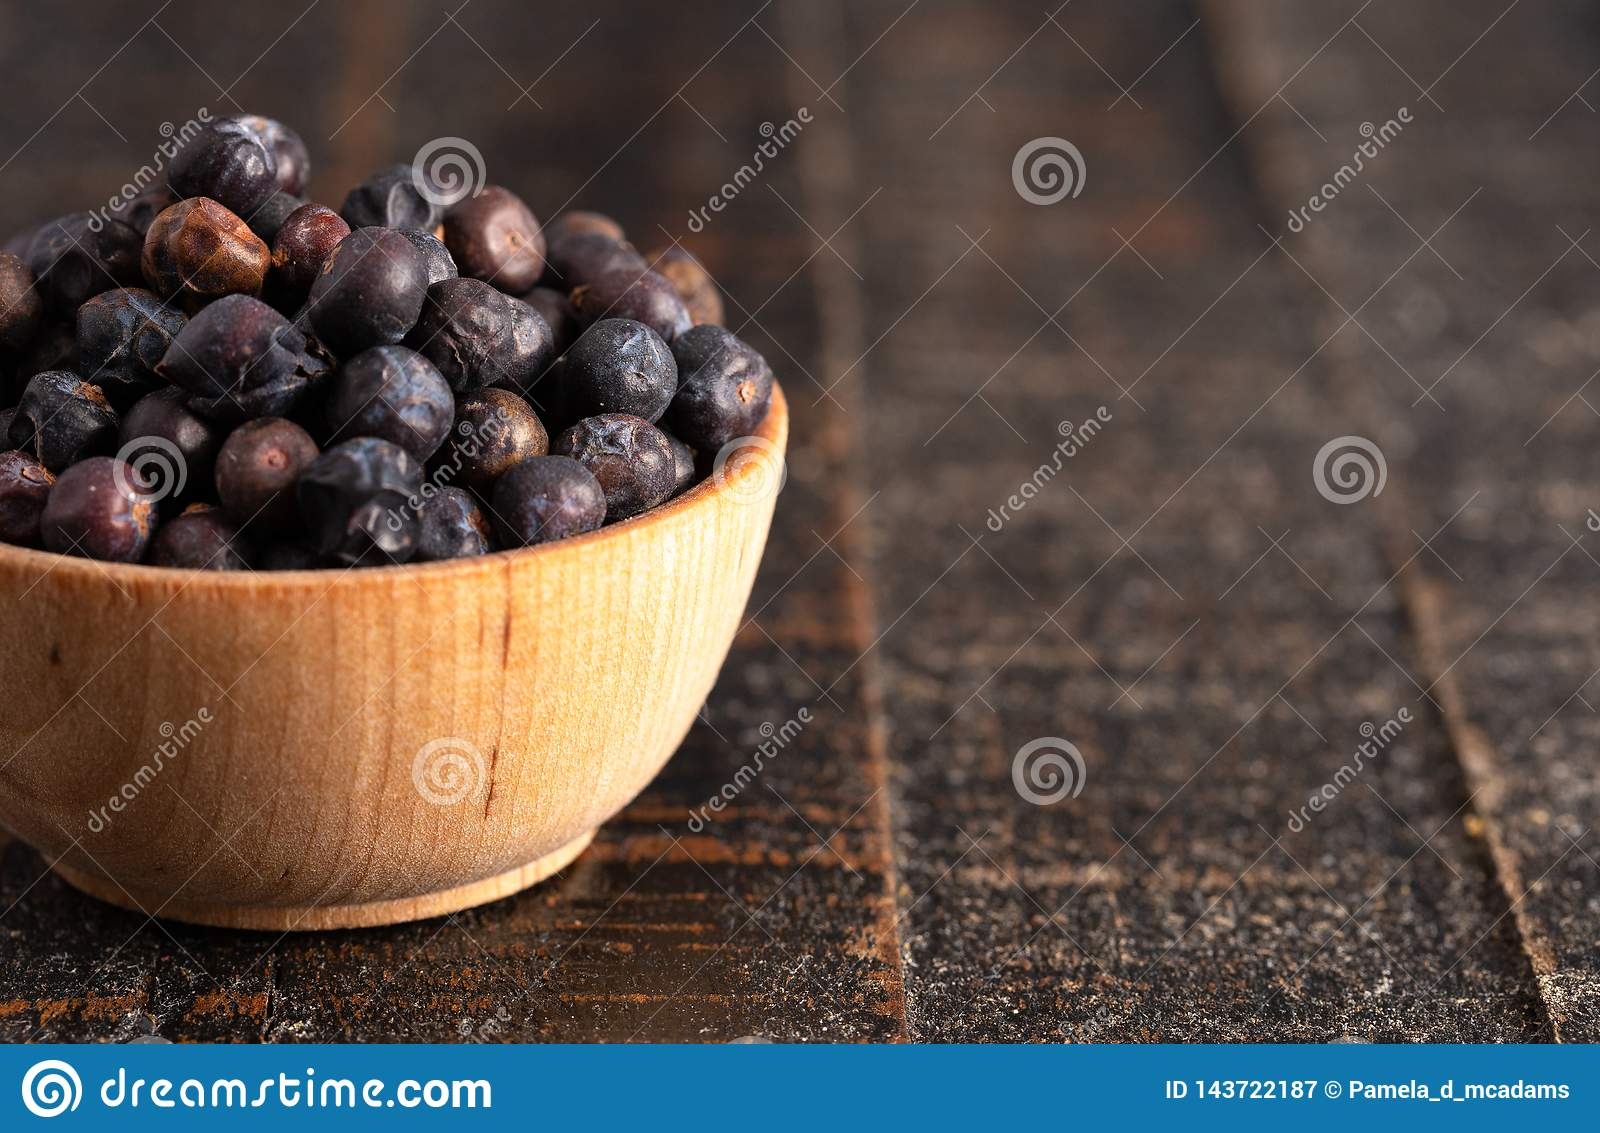 Bowl Full of Dried Juniper Berries on a Wooden Table